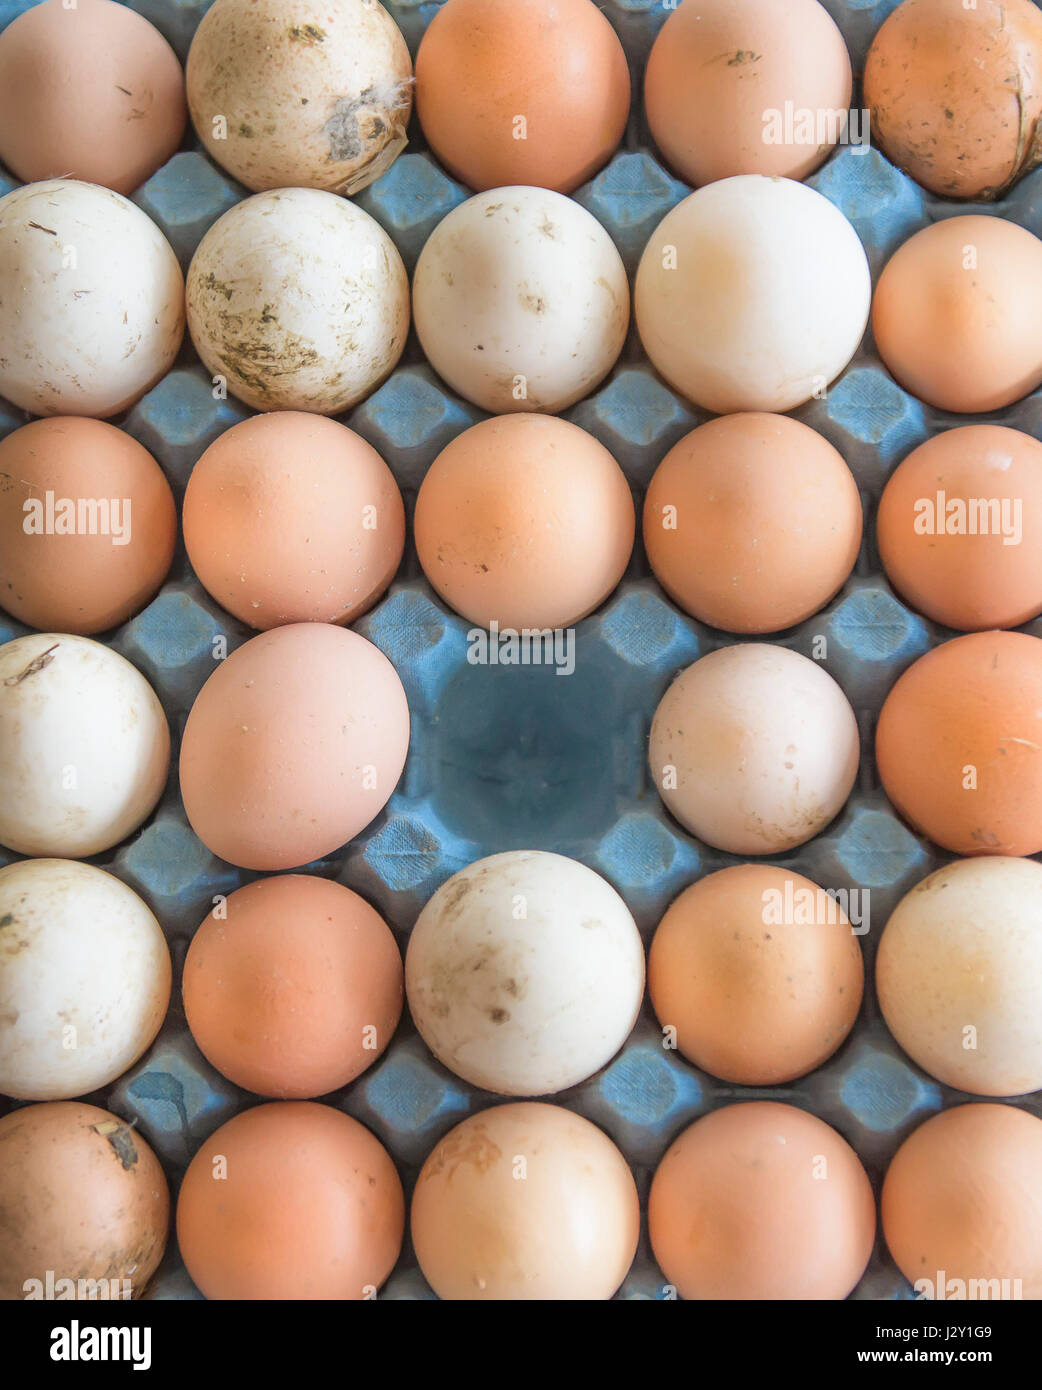 A tray of very fresh unwashed eggs Shells Natural Nature Source of Protein Free range eggs Organic Eggshell Eggshells - Stock Image